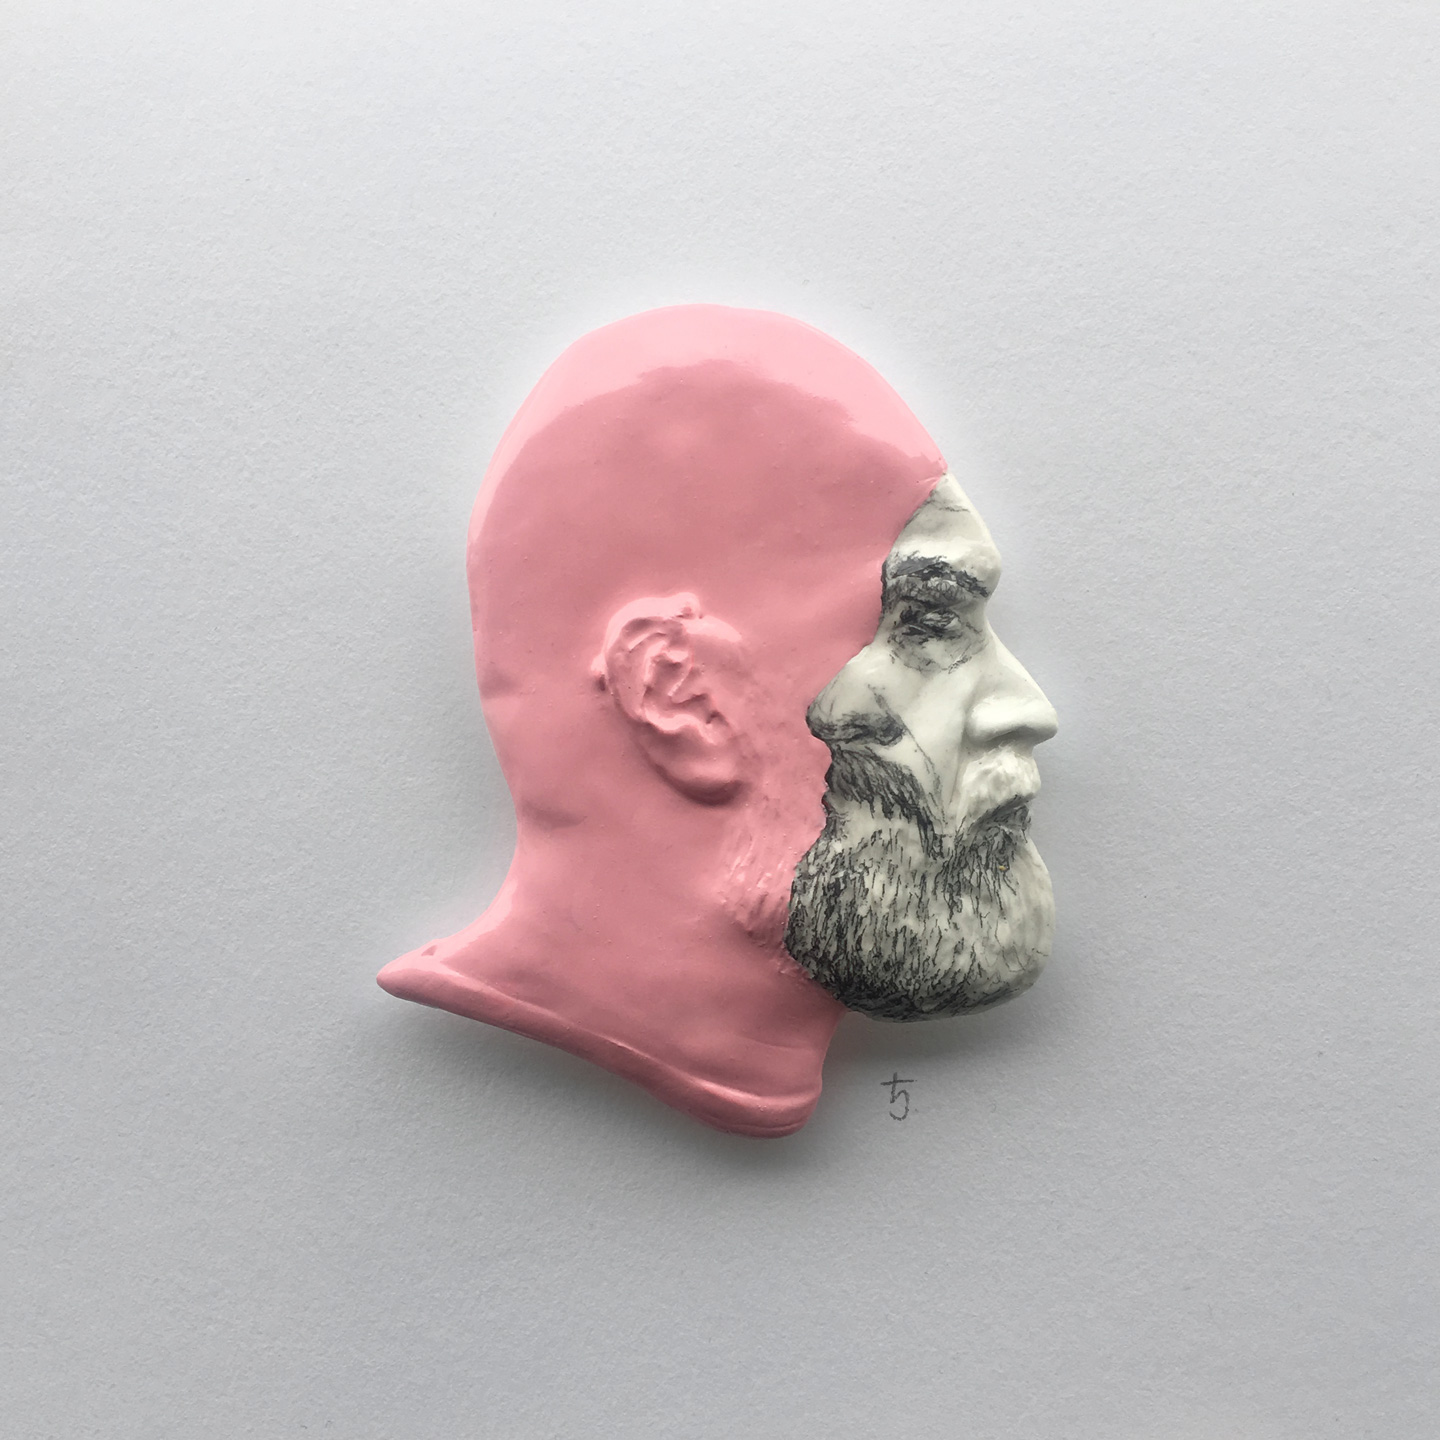 art_andre_levy_zhion_recovered_self_portrait_beard_pink_dual.jpg